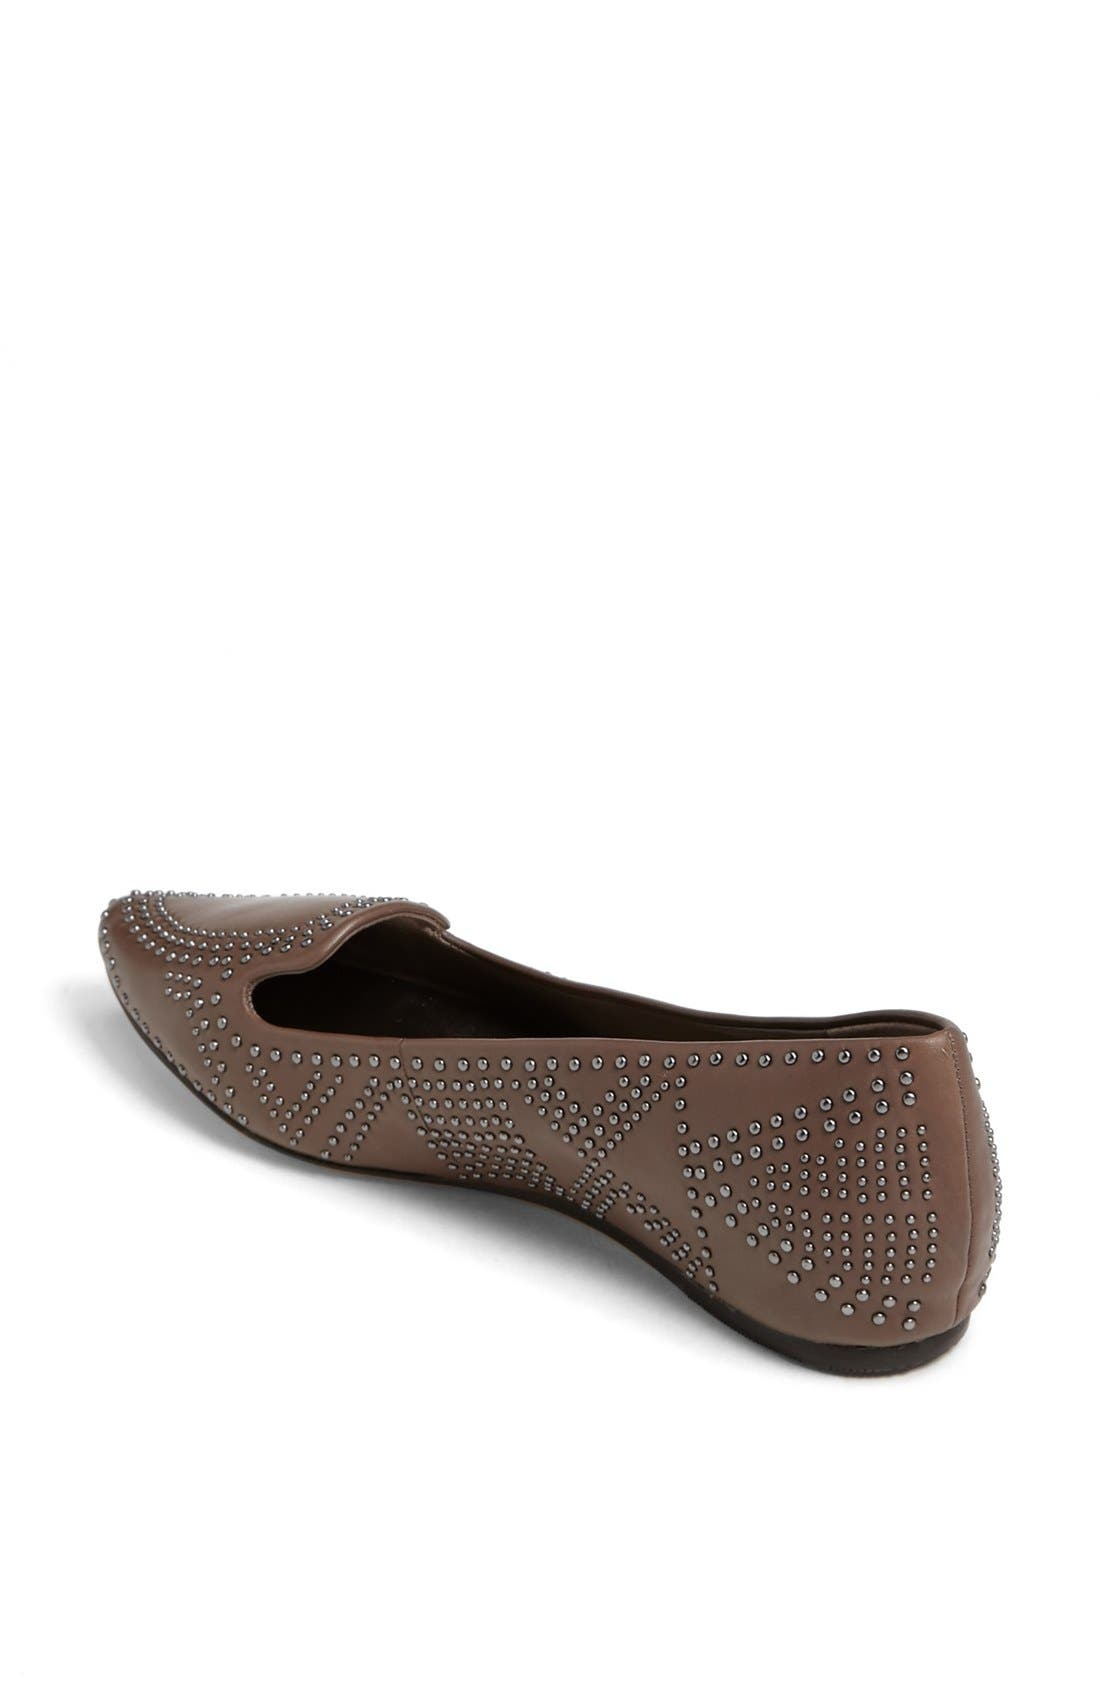 Alternate Image 2  - BCBGMAXAZRIA 'Tille' Loafer